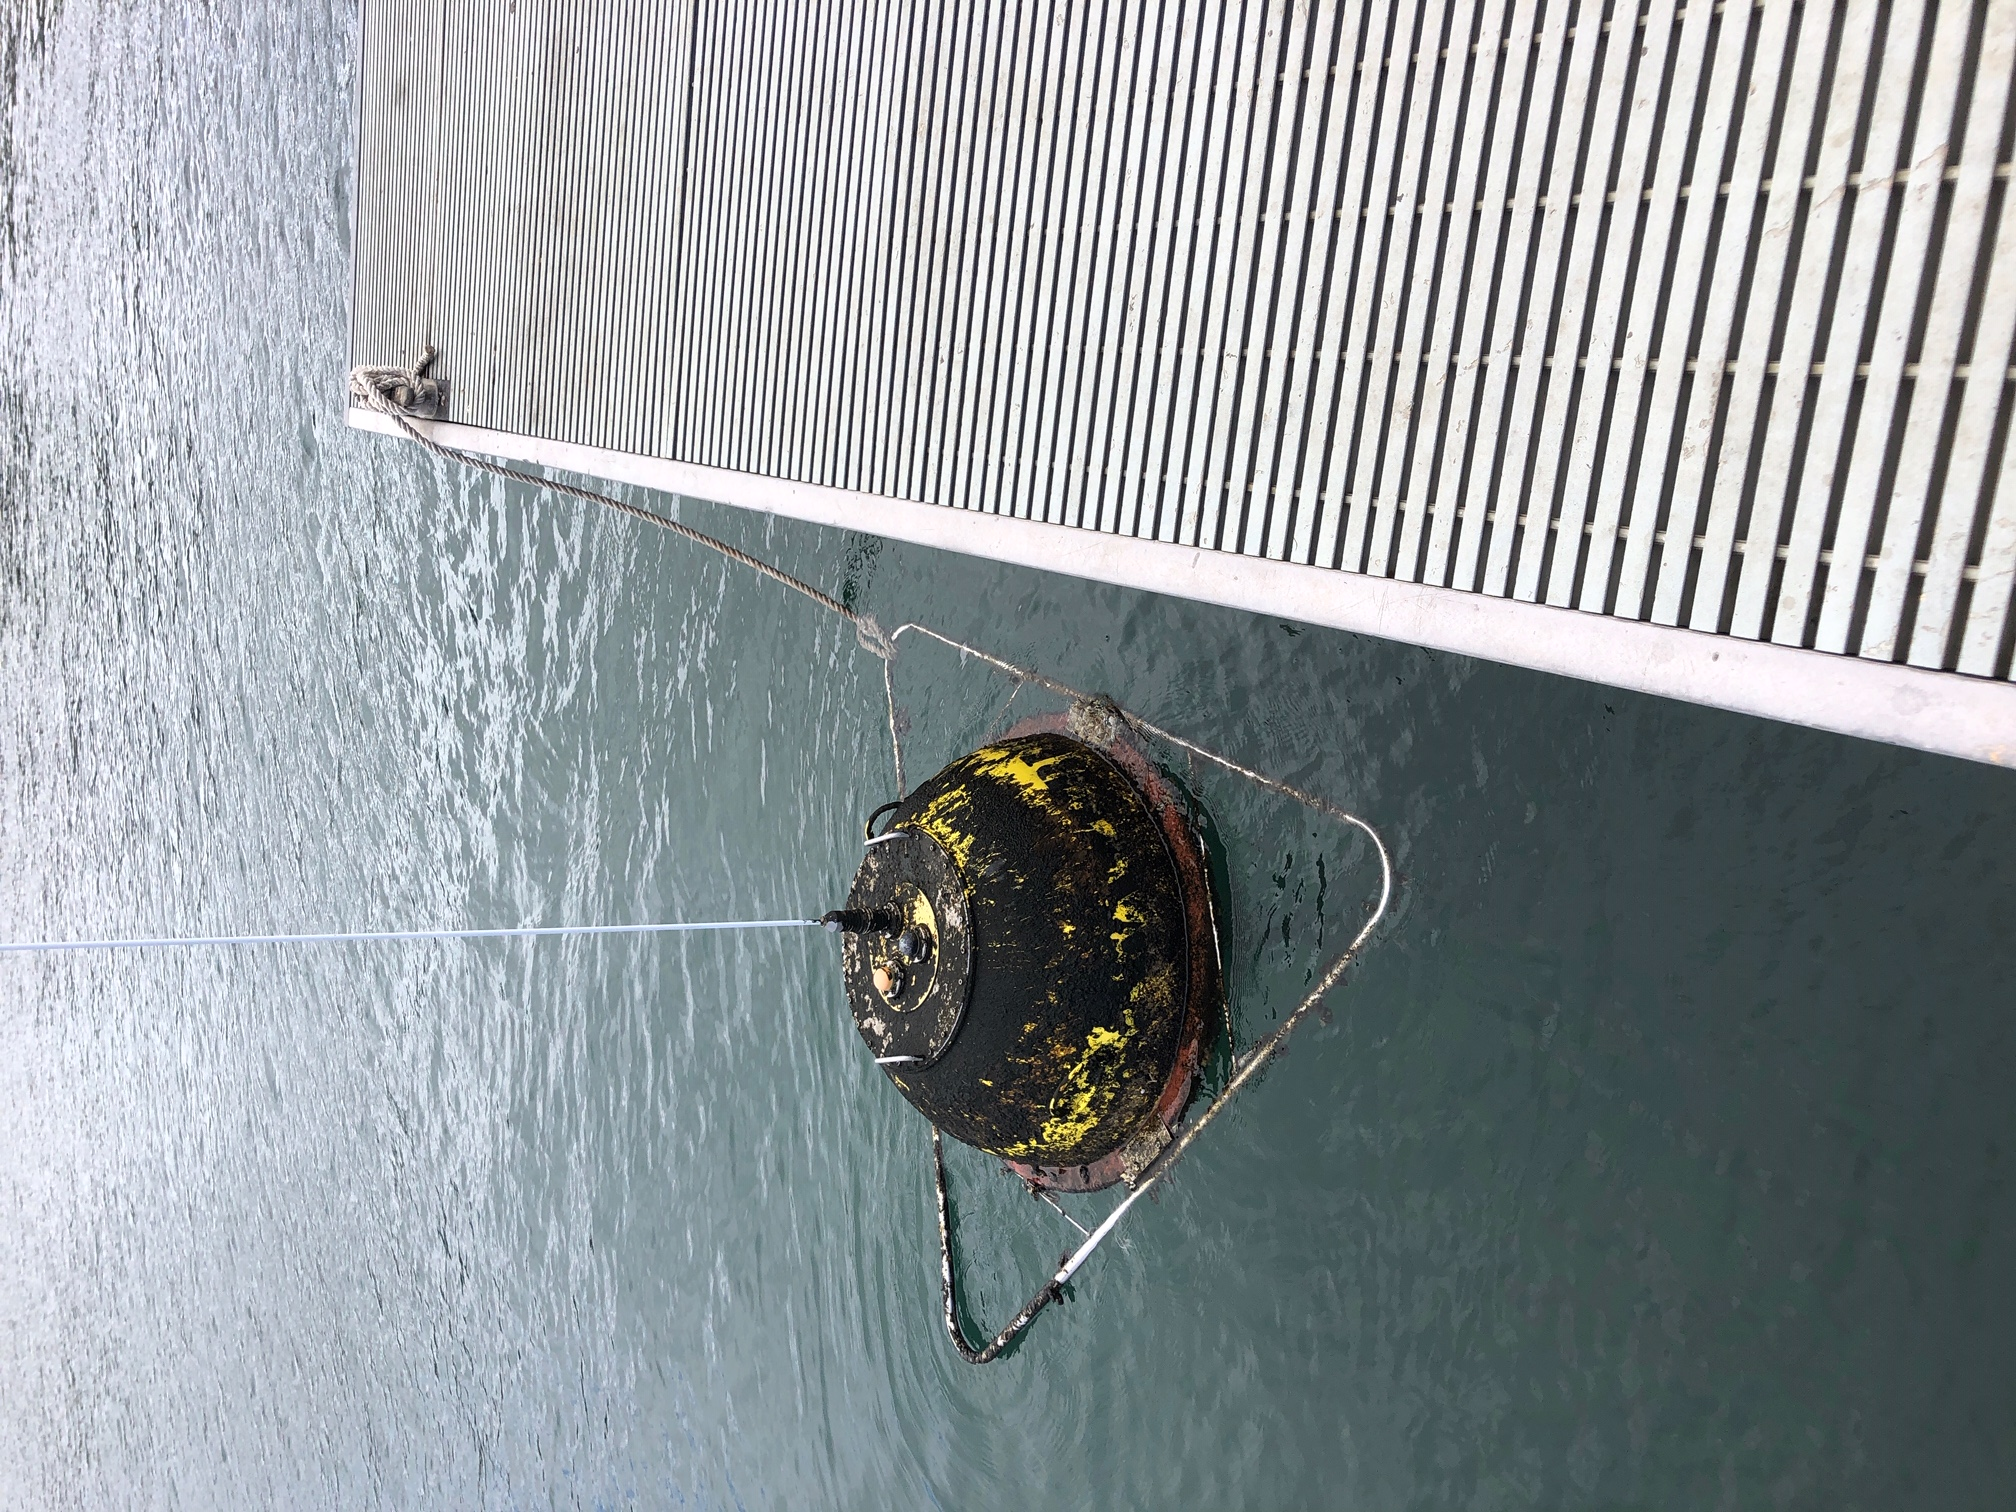 Recovered buoy with a lot of growth